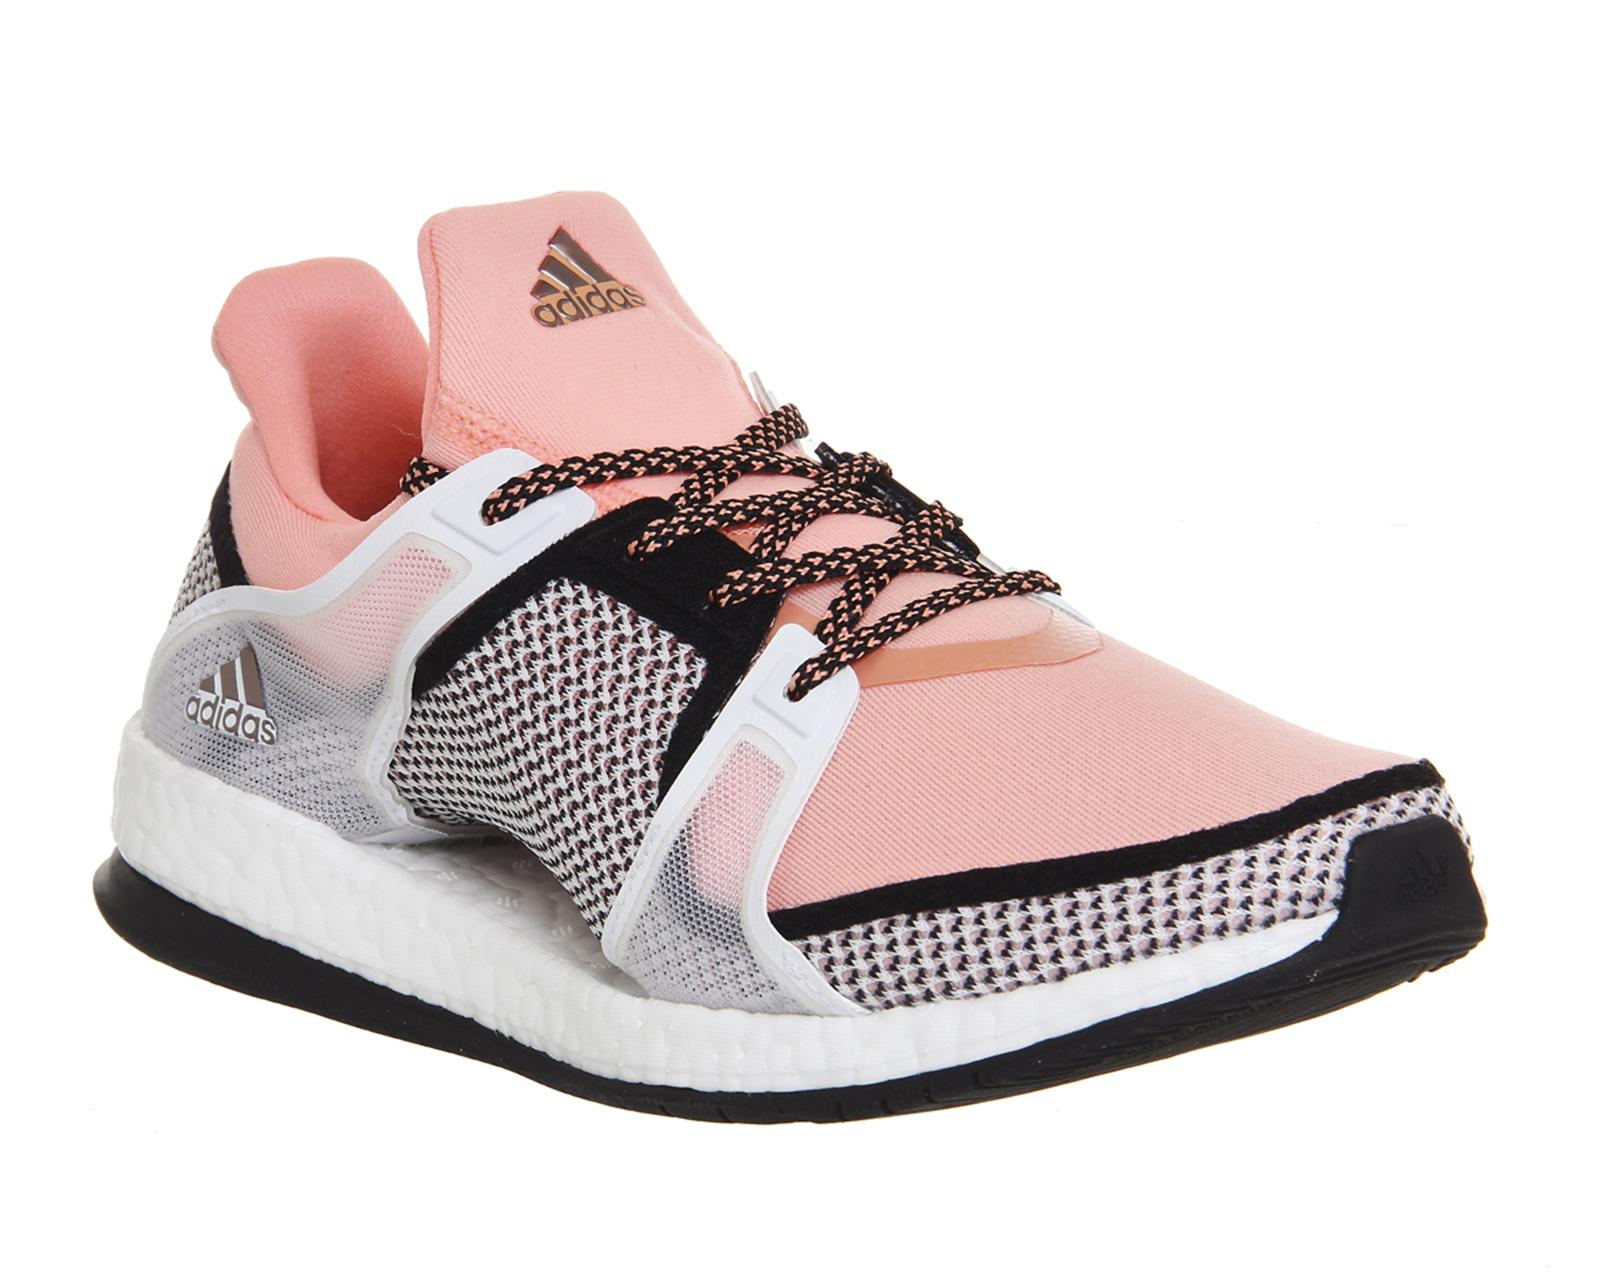 5a4c4a1050c0f ... trainers womens core black onix future white women performance shoes  986134 024 6ad36 fa94d  sweden lyst adidas originals pure boost x tr in  pink 67926 ...